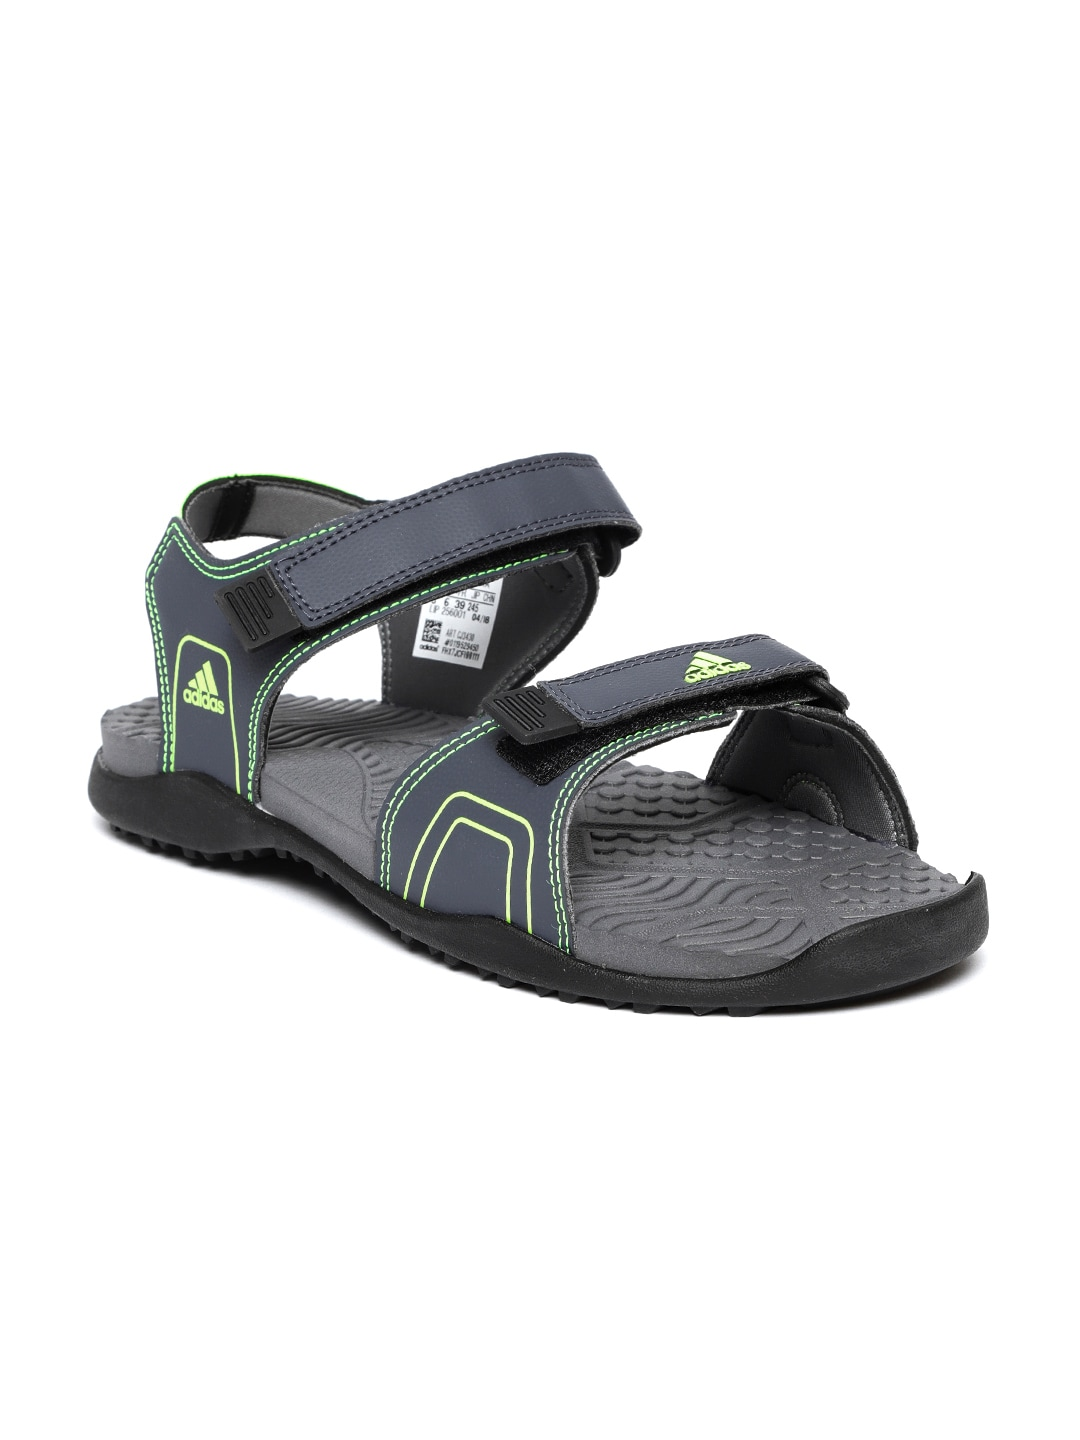 459a72828b6e Men Adidas Sandals - Buy Men Adidas Sandals online in India